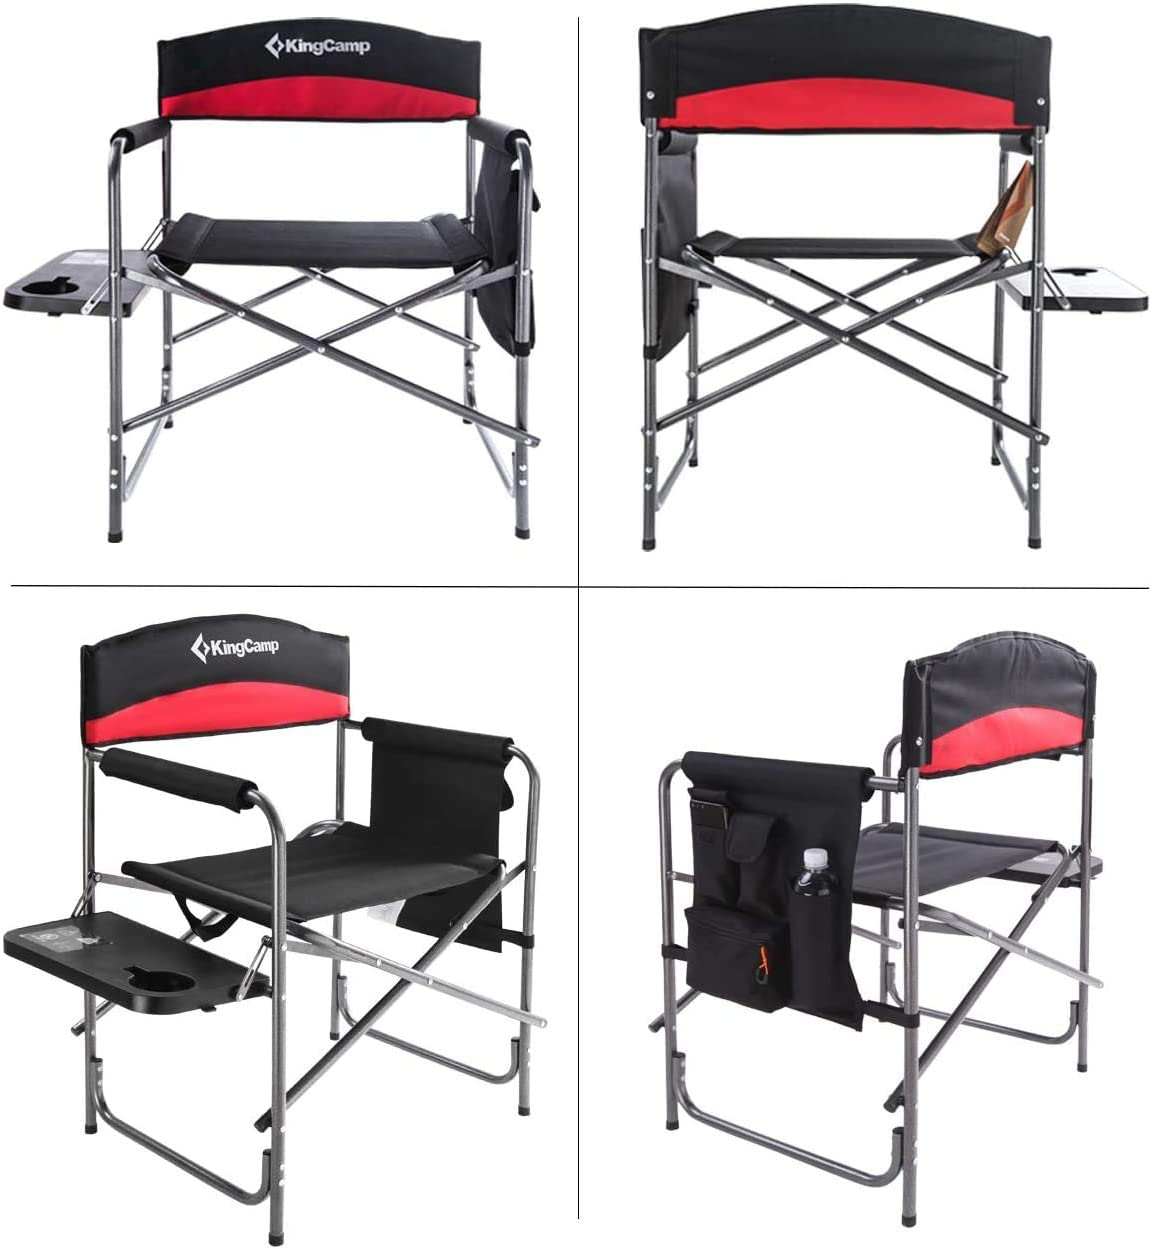 KingCamp Heavy Duty Camping Folding Director Chair Oversize Padded Seat with Side Table and Side Pockets, Supports 396 lbs : Sports & Outdoors